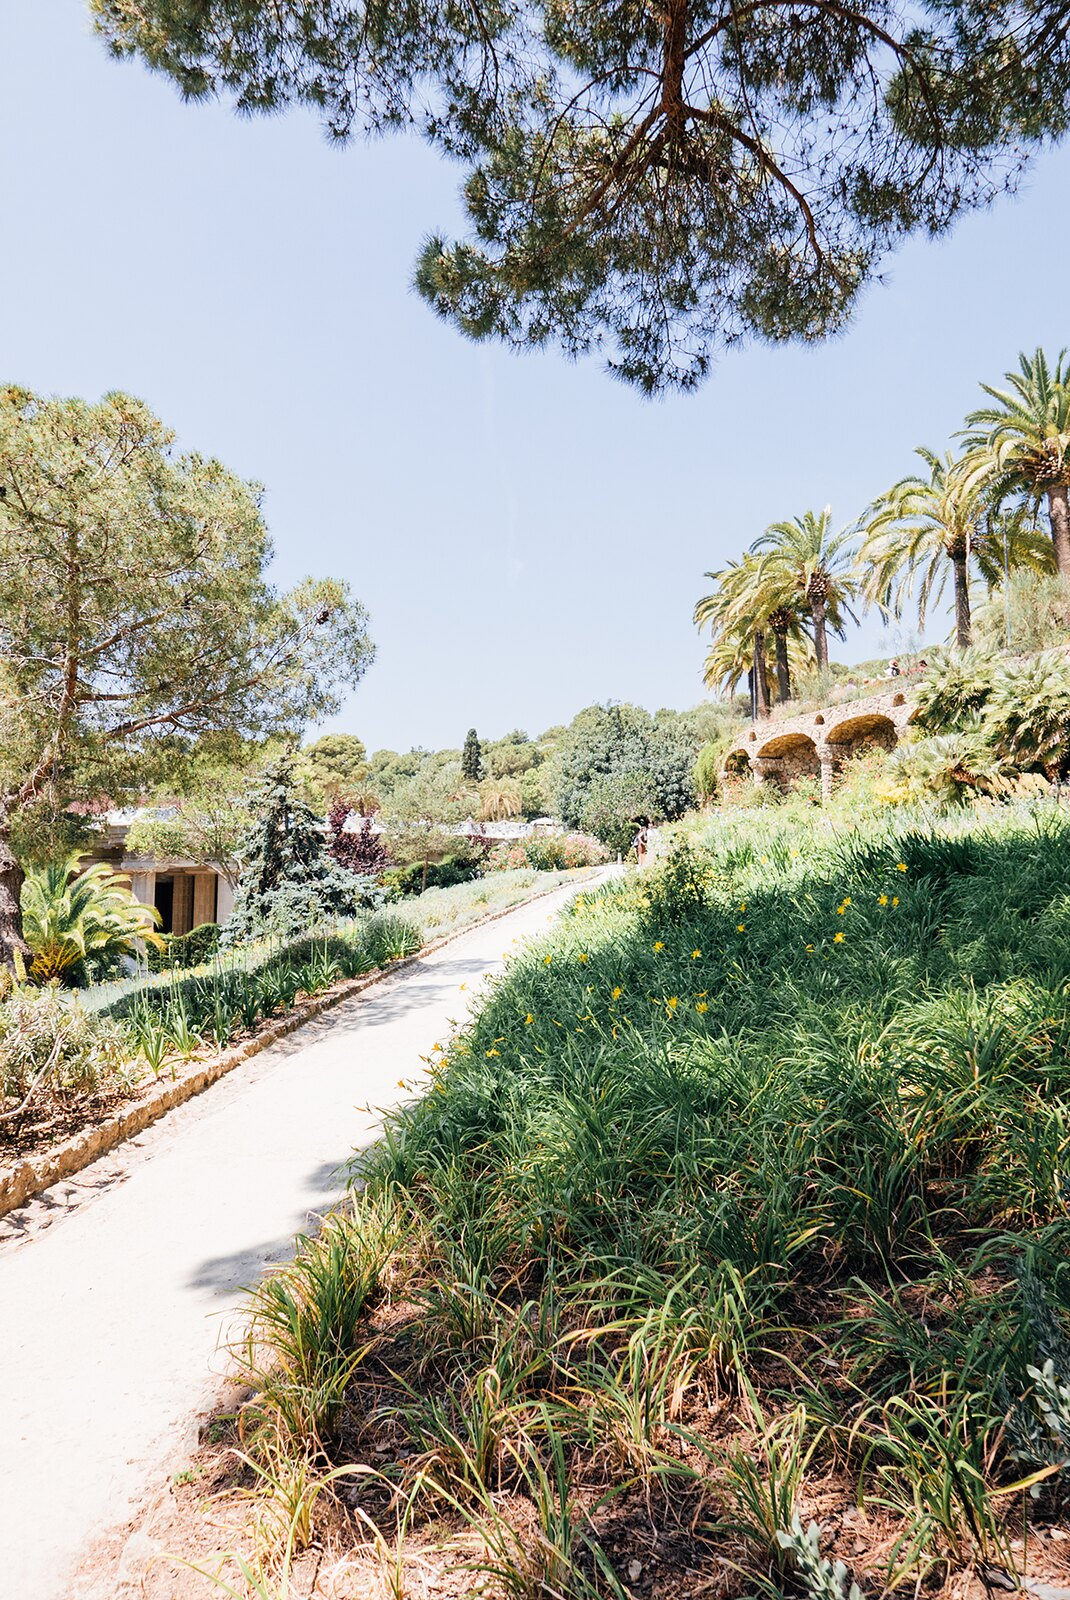 barcelona-parkGuell-weareloveaddicts-87